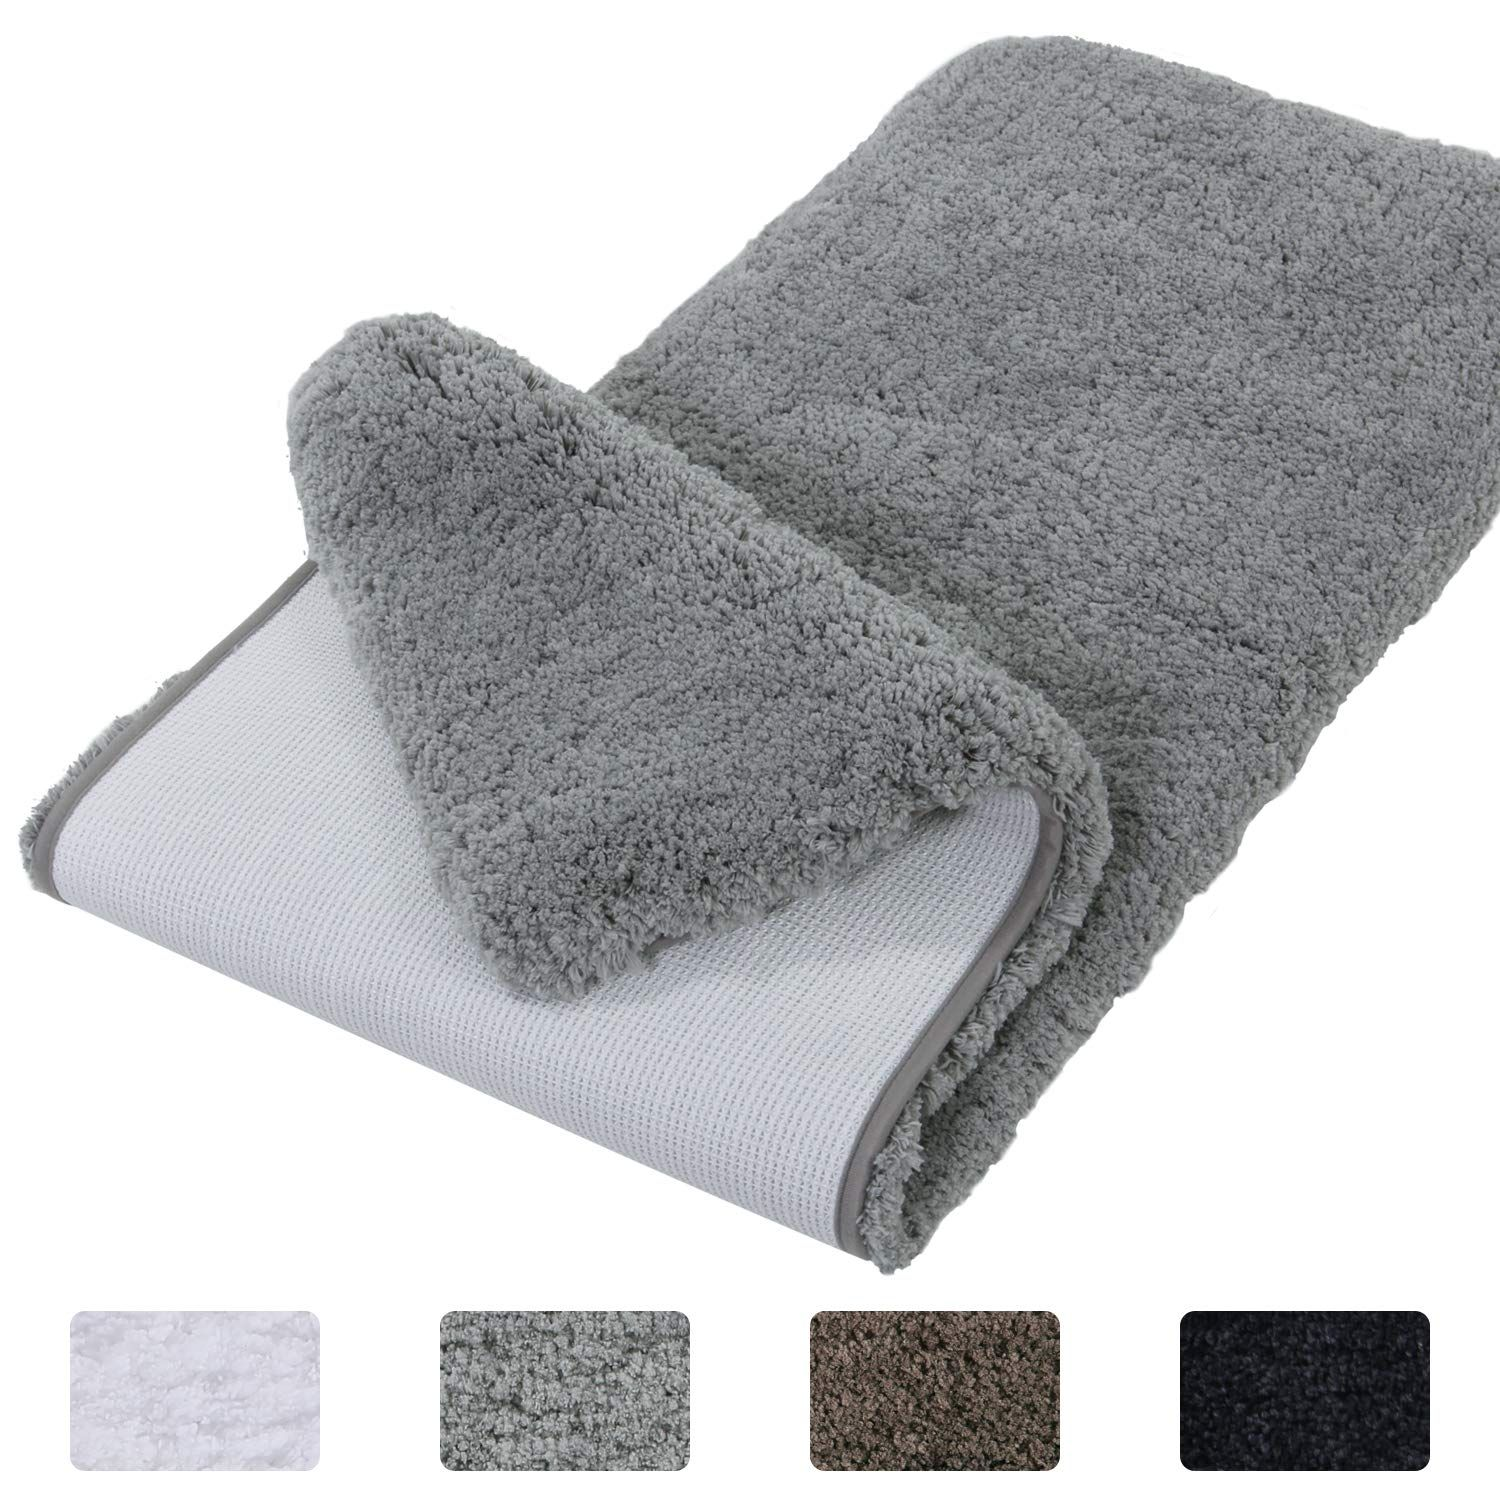 Lifewit Bathroom Rug Bath Mat Nonslip Rubber Microfiber Soft Water Absorbent Thick Shaggy Floor Mats Machine Washabl Bath Rugs Long Bathroom Rugs Bathroom Rugs